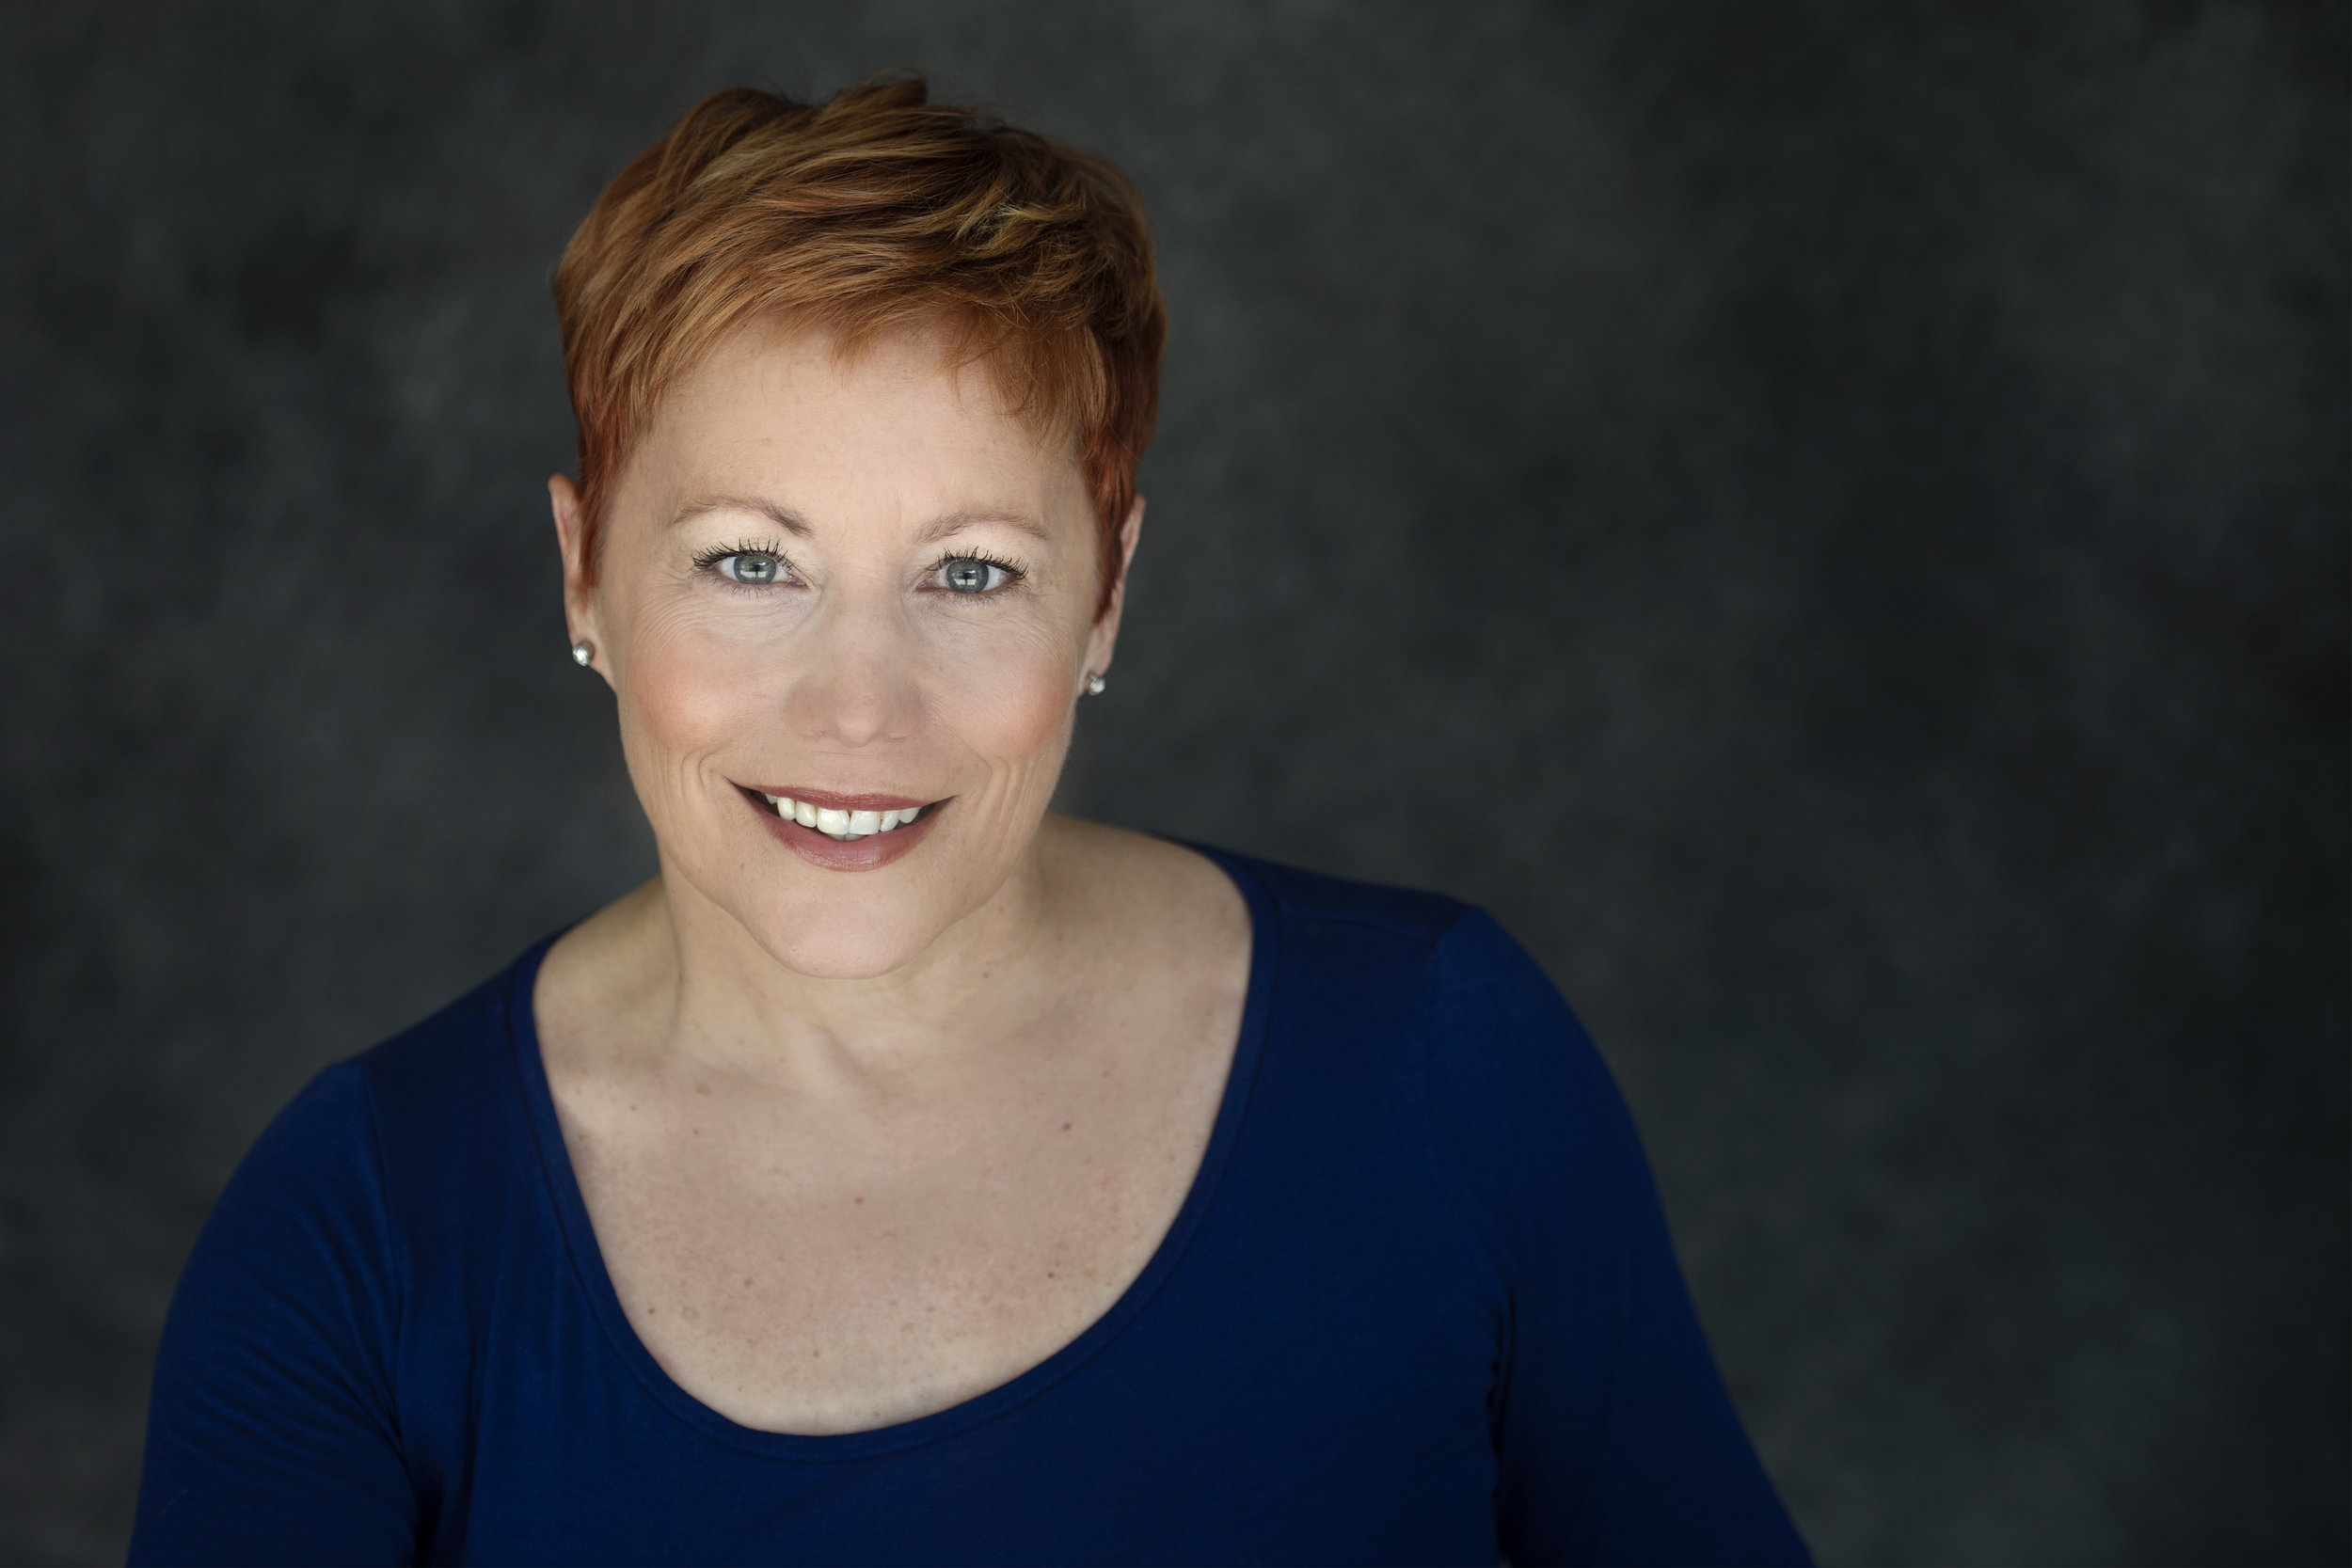 The Voice of Dulcet Tones - Meet Ann Coatney. A member of SAG and AFTRA with 20 years of acting experience across theatre, tv and film, Ann found her voice in sunny Denver, Colorado where she now lives and works as a full-time voiceover artist for clients across the country. Ann has a special facility with accents and tones, and a playful and stylish approach to life, which echoes in the warmth of her voice and passionate dedication to her clients.  Ann is known for her high attention to detail, flexibility and trusted client relationships.